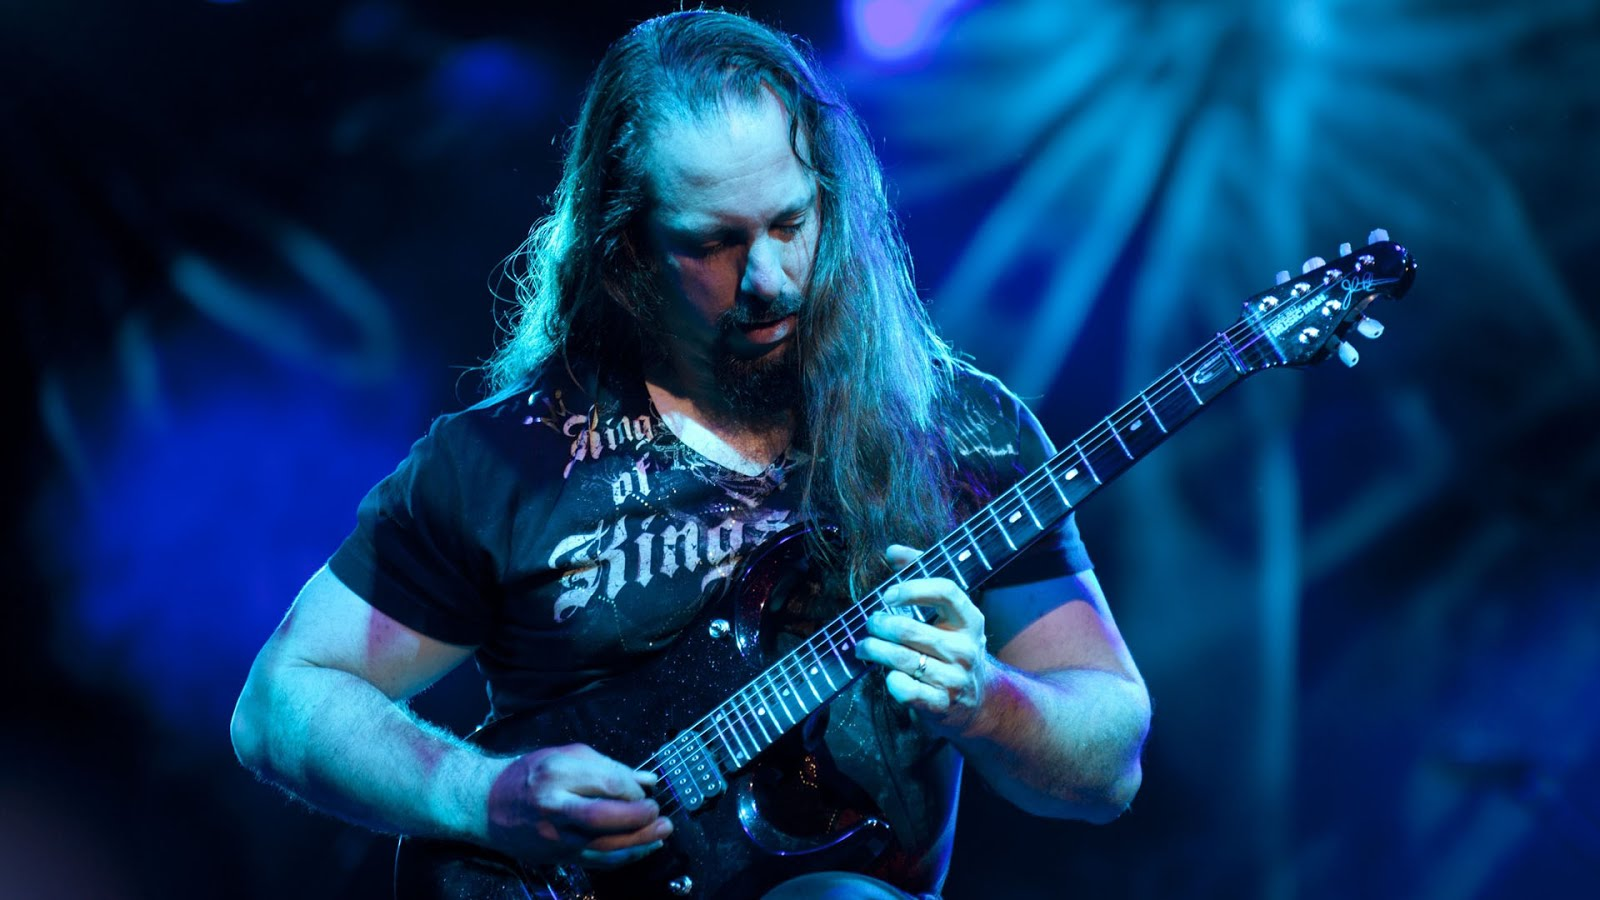 John Petrucci - 'Slow practicing' the solo from 'Moment Of Betrayal' backstage